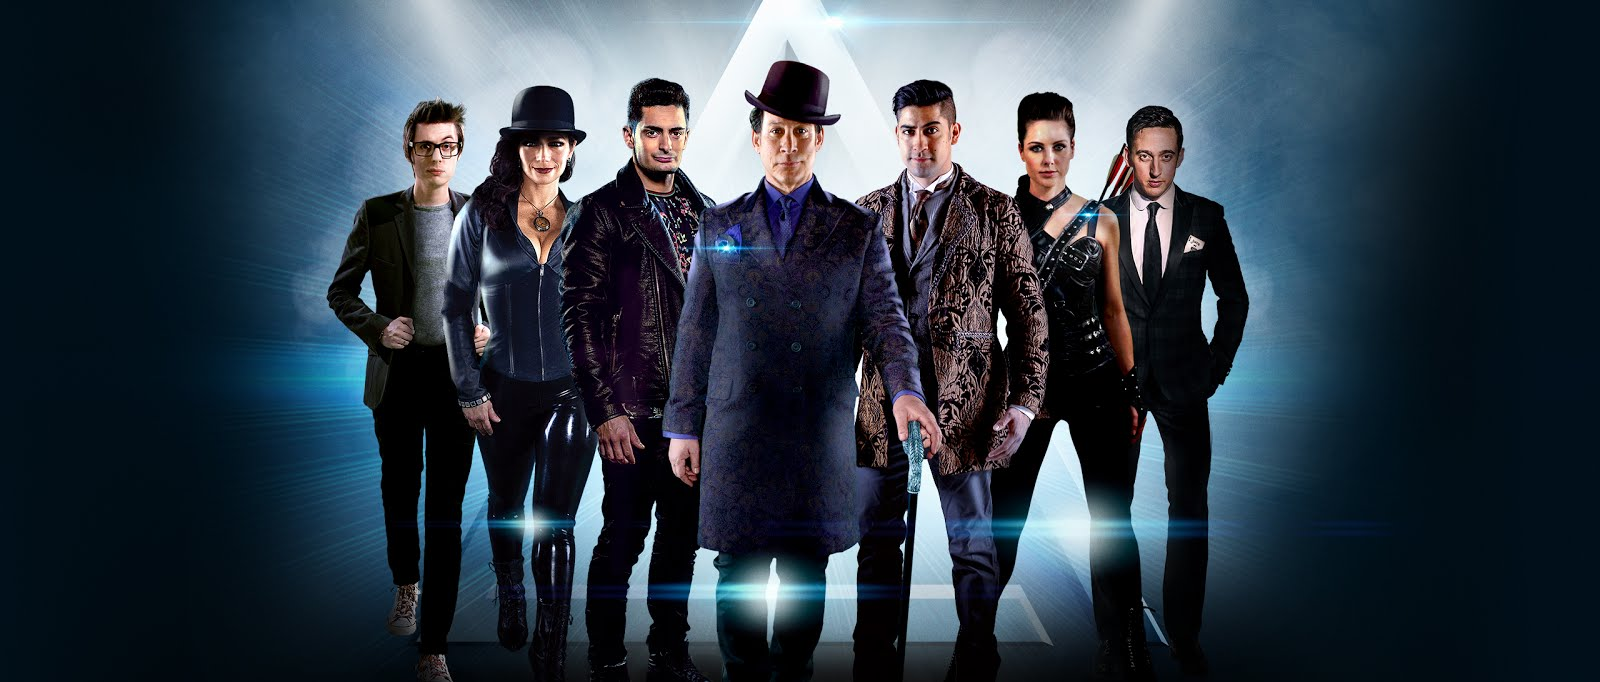 THE ILLUSIONISTS - The most outrageous and astonishing acts ever